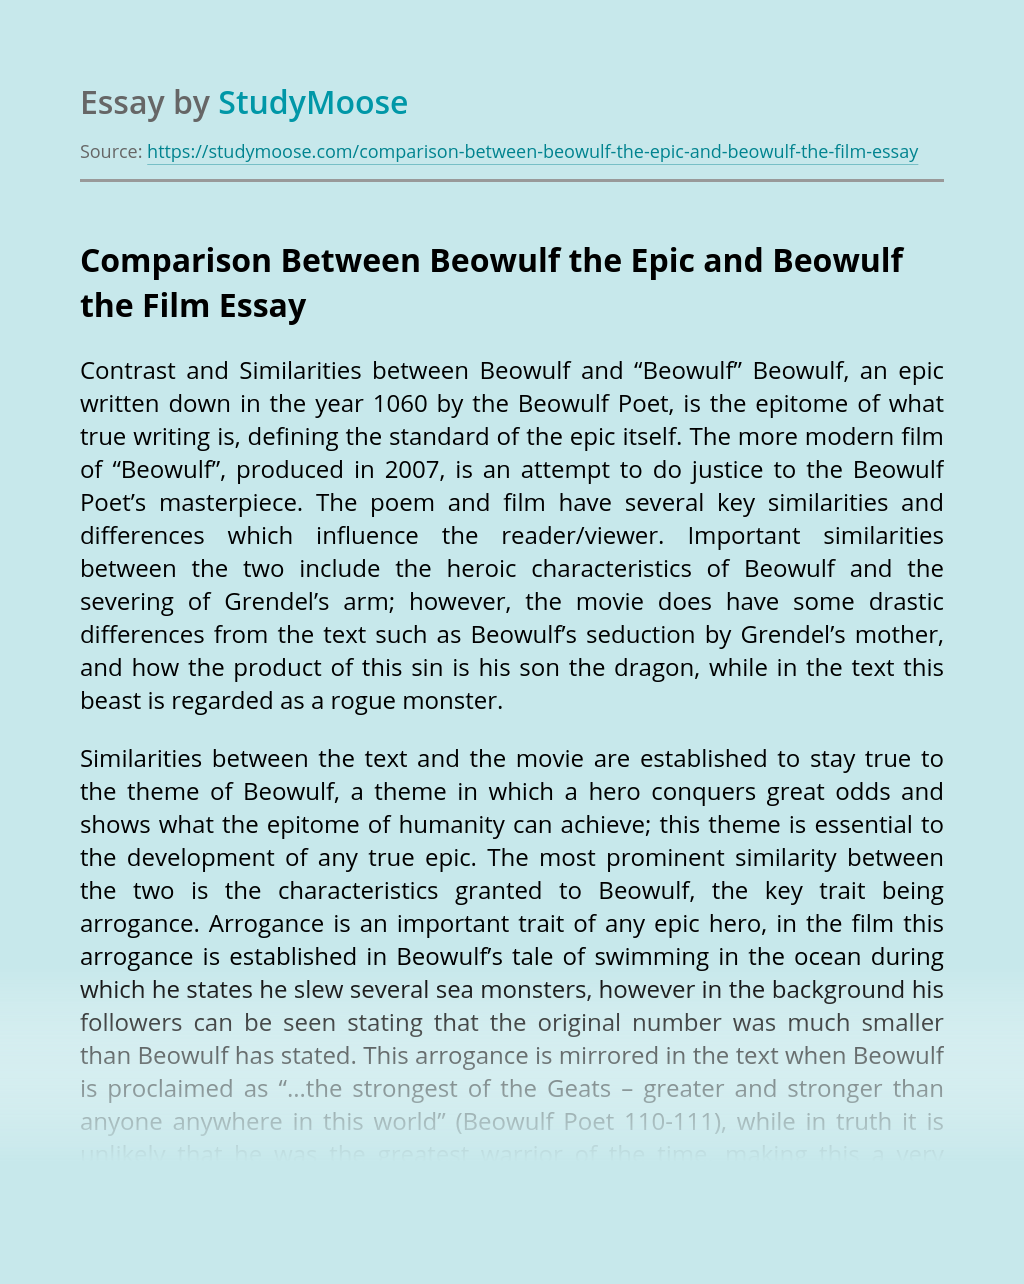 Comparison Between Beowulf the Epic and Beowulf the Film